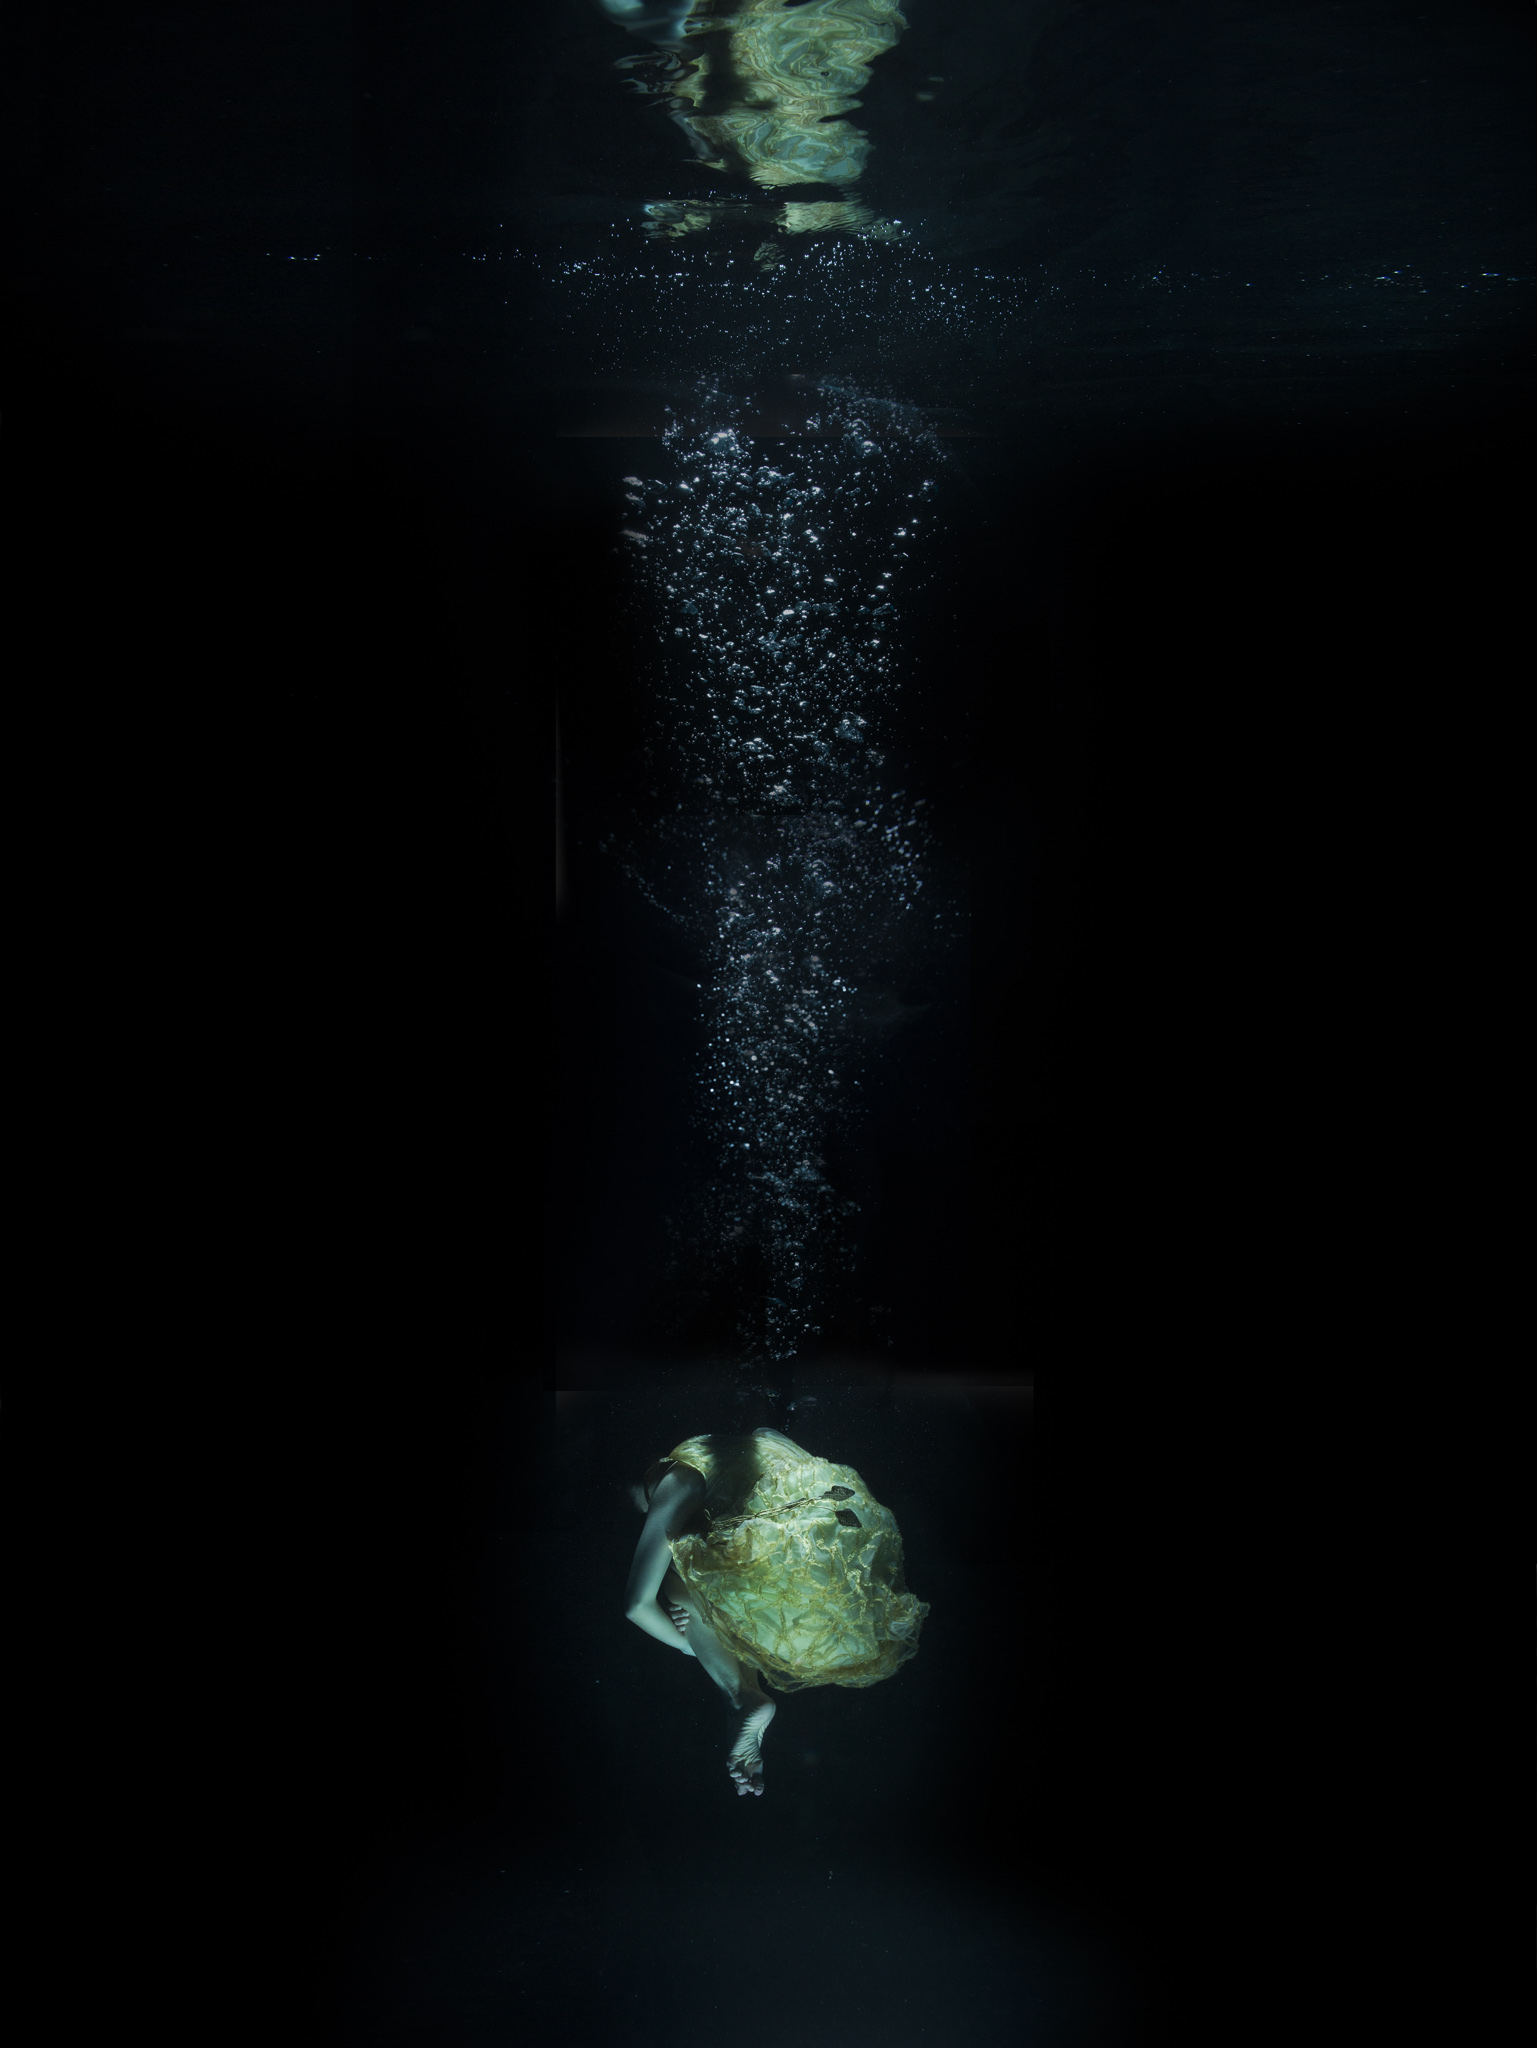 Underwater Fine Art Photography by ChengHan